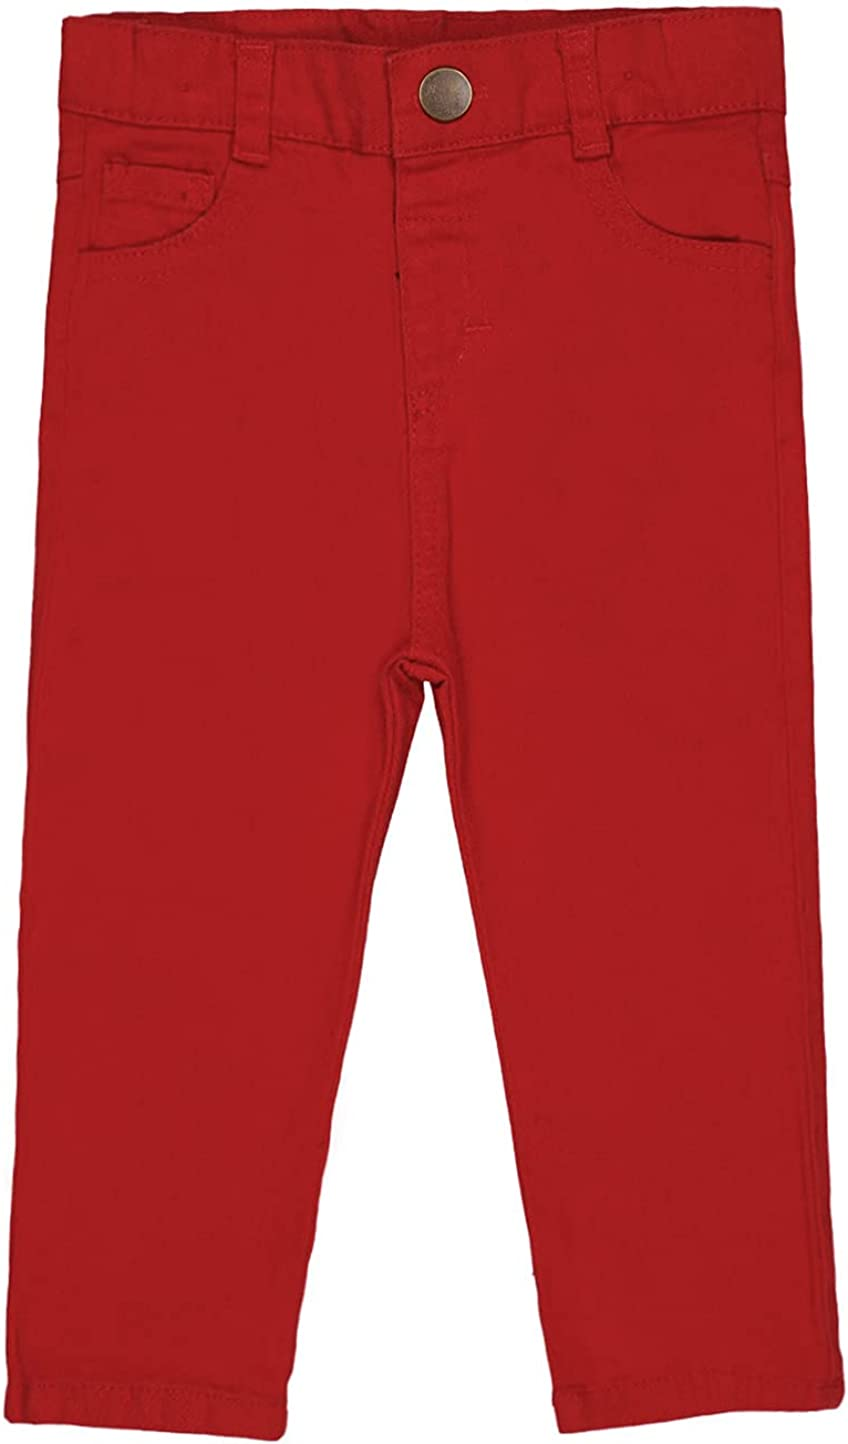 Baby boy Stretch Chino Pants Waist Elastic New product type Adjuster Clothes - Omaha Mall